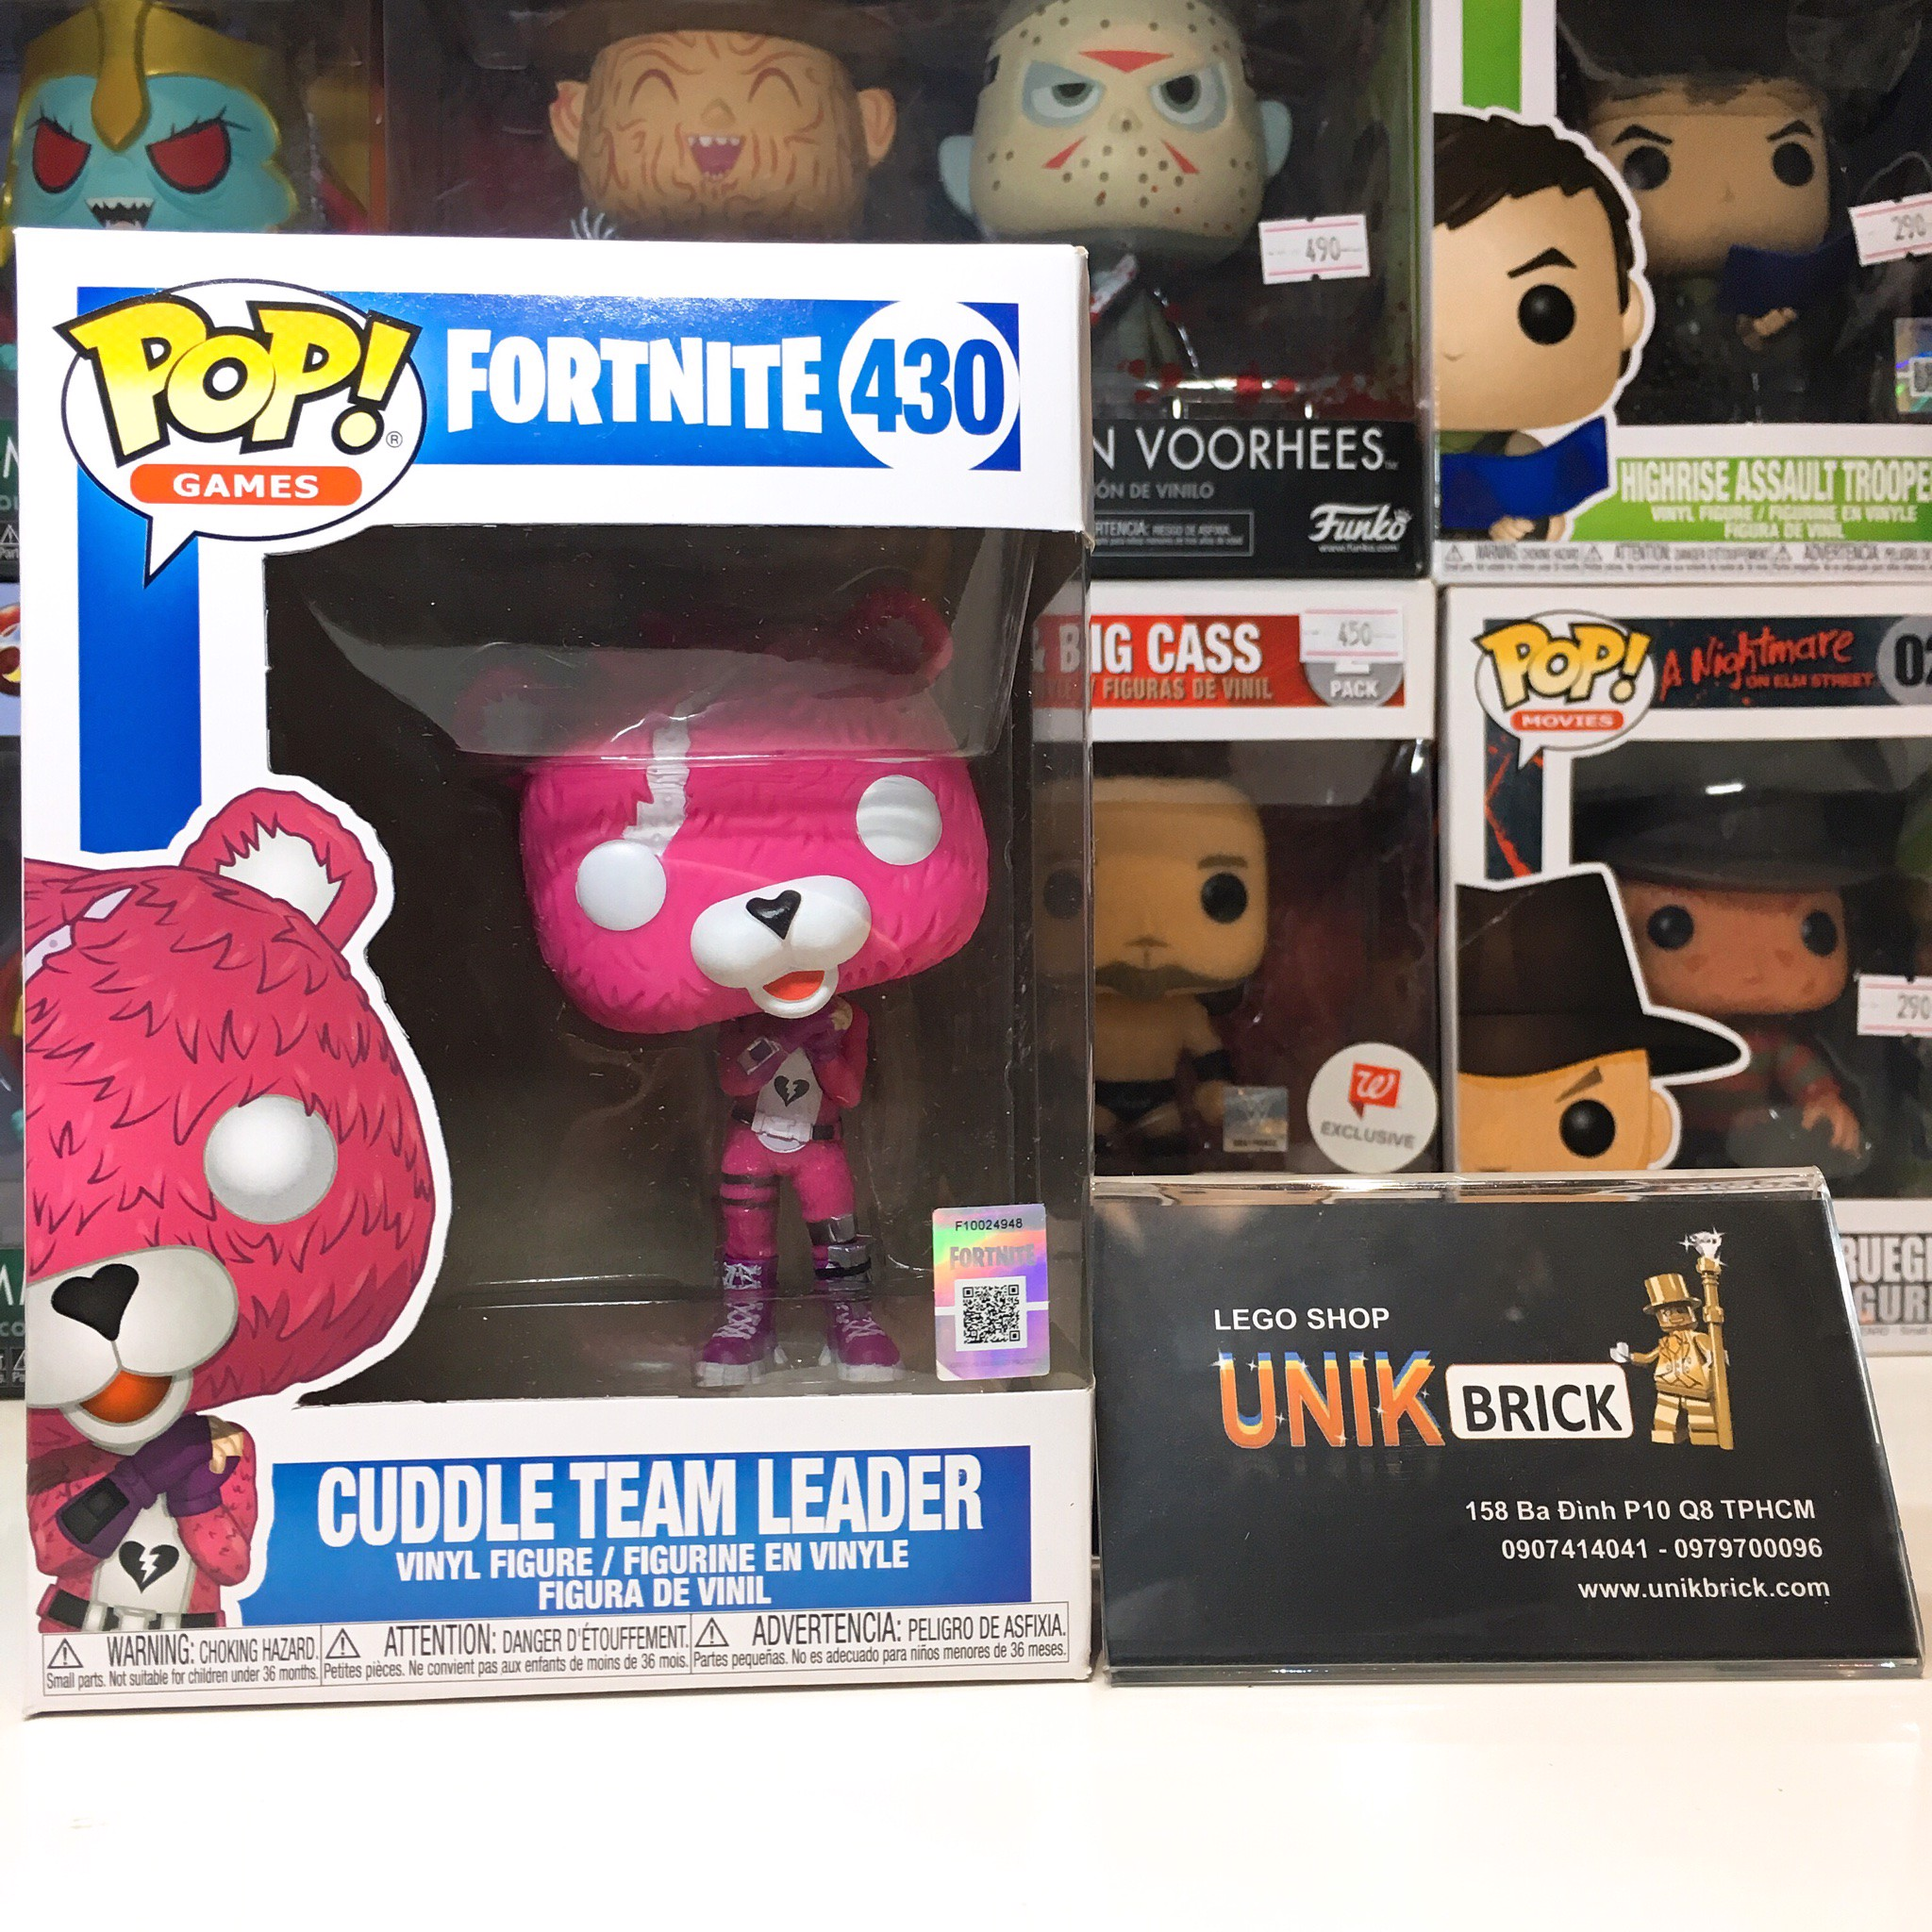 FUNKO POP Fortnite 430 Cuddle Team Leader